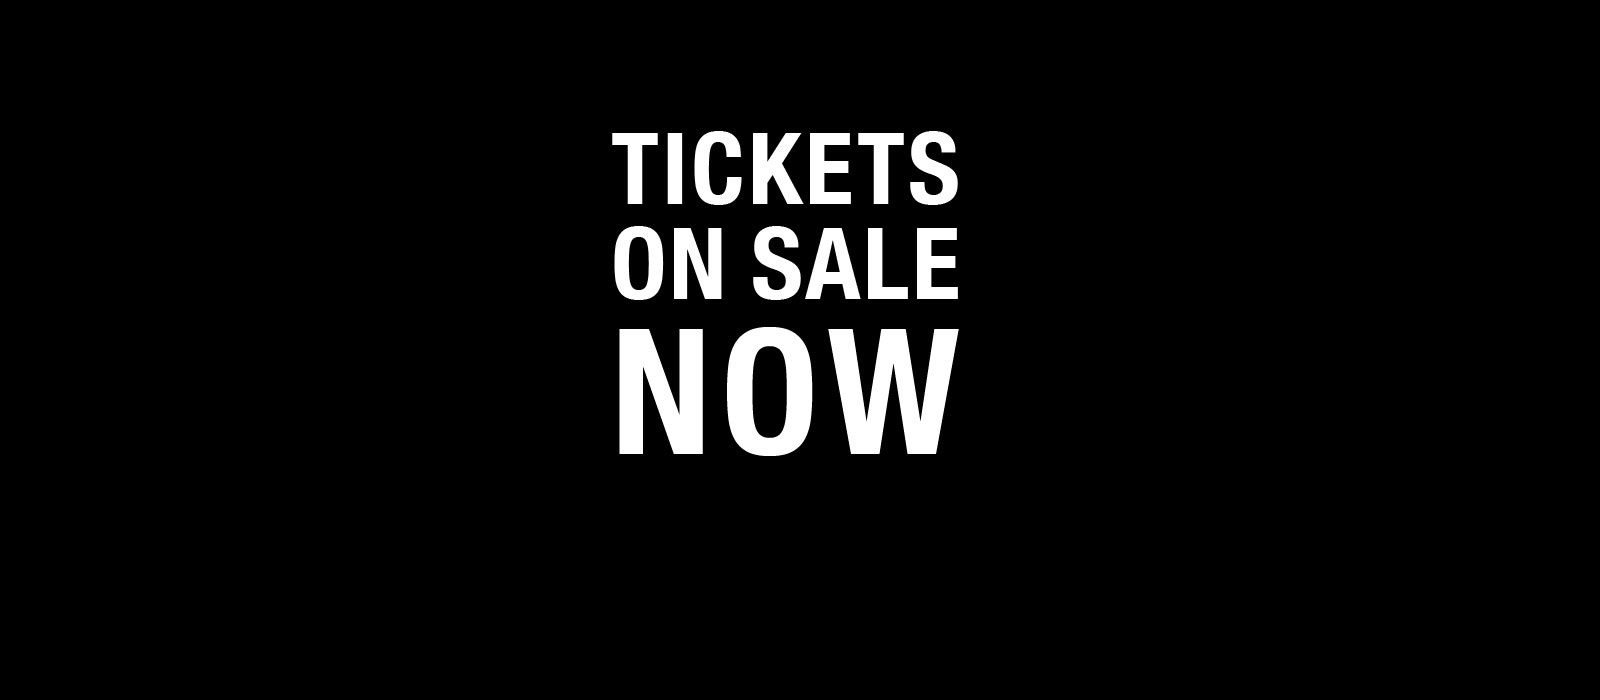 Tickets On Sale Now